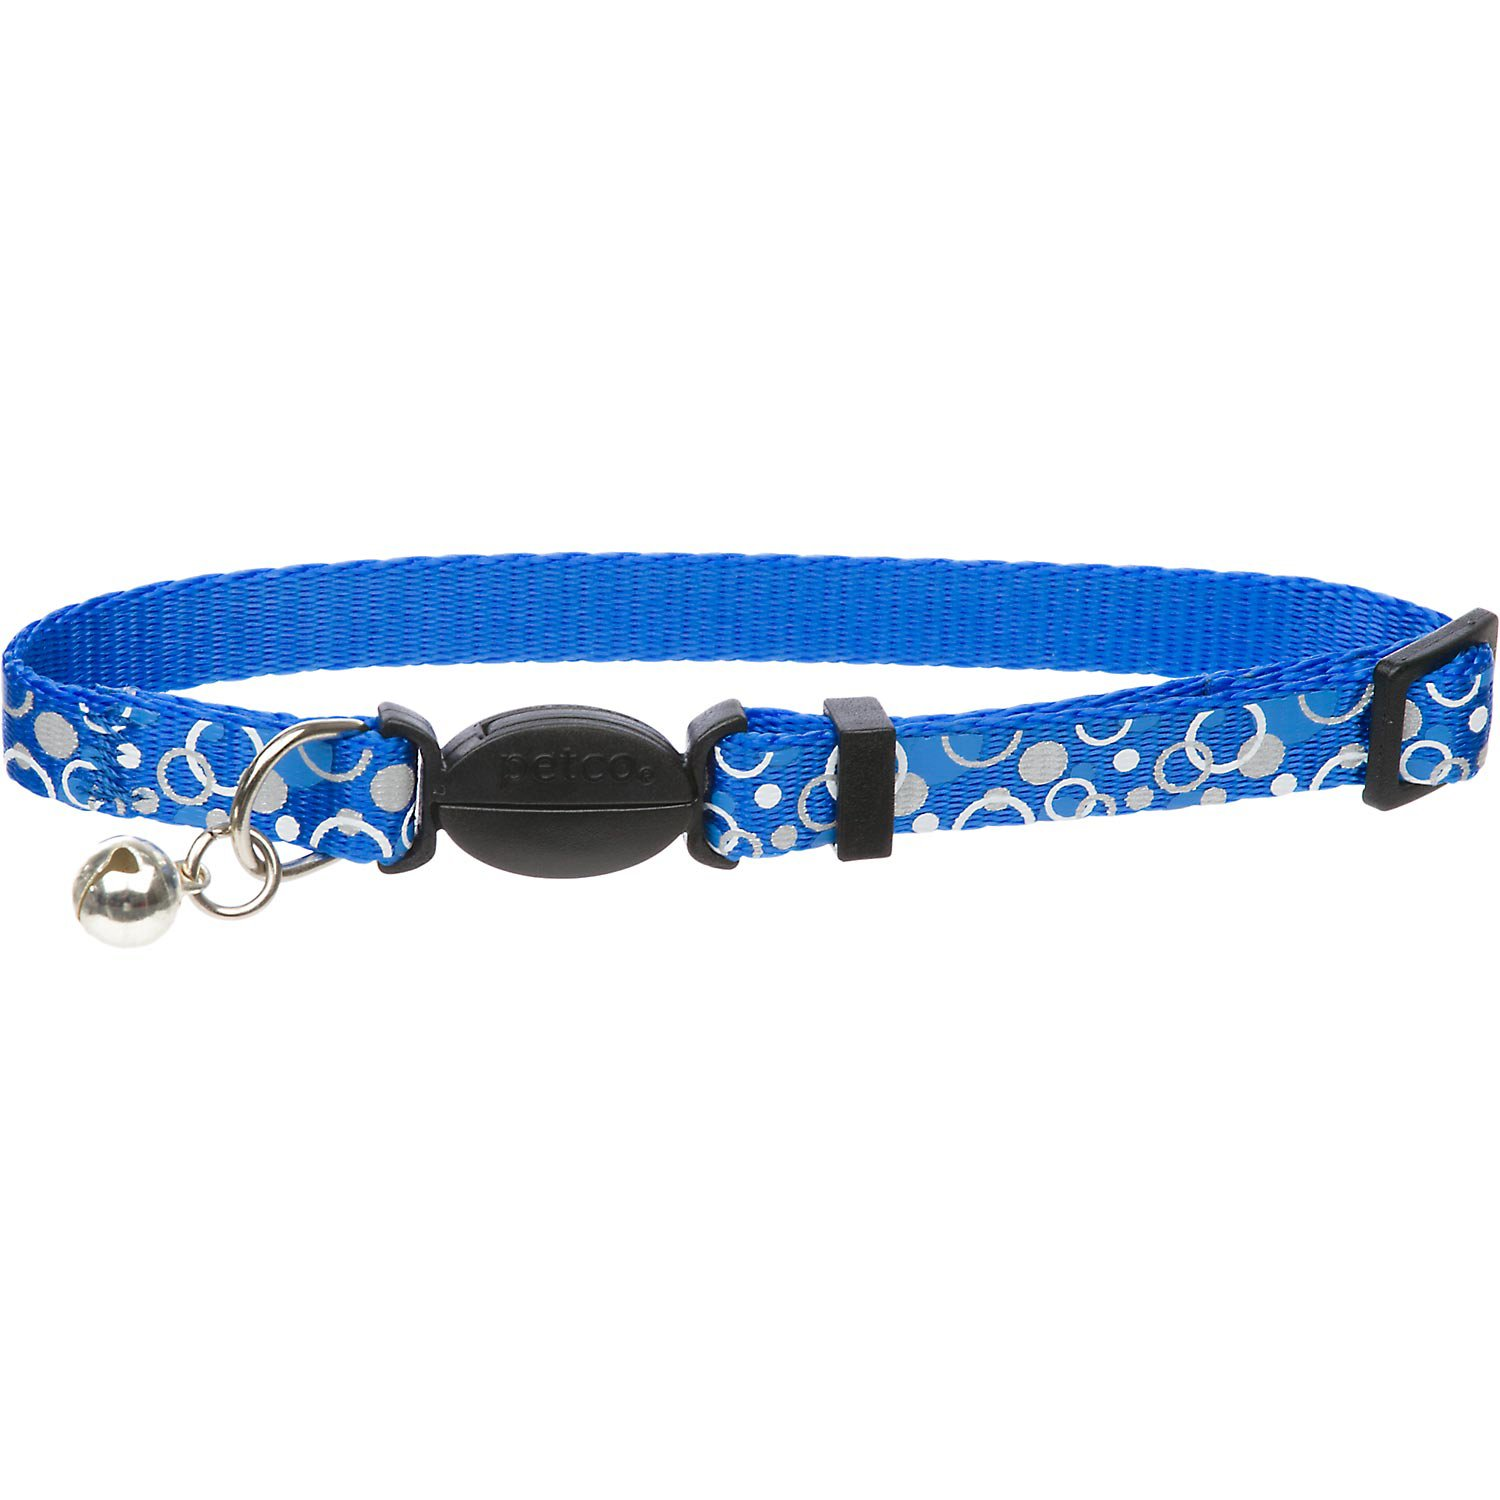 Petco Nylon Adjustable Reflective Dots Cat Collar in Blue